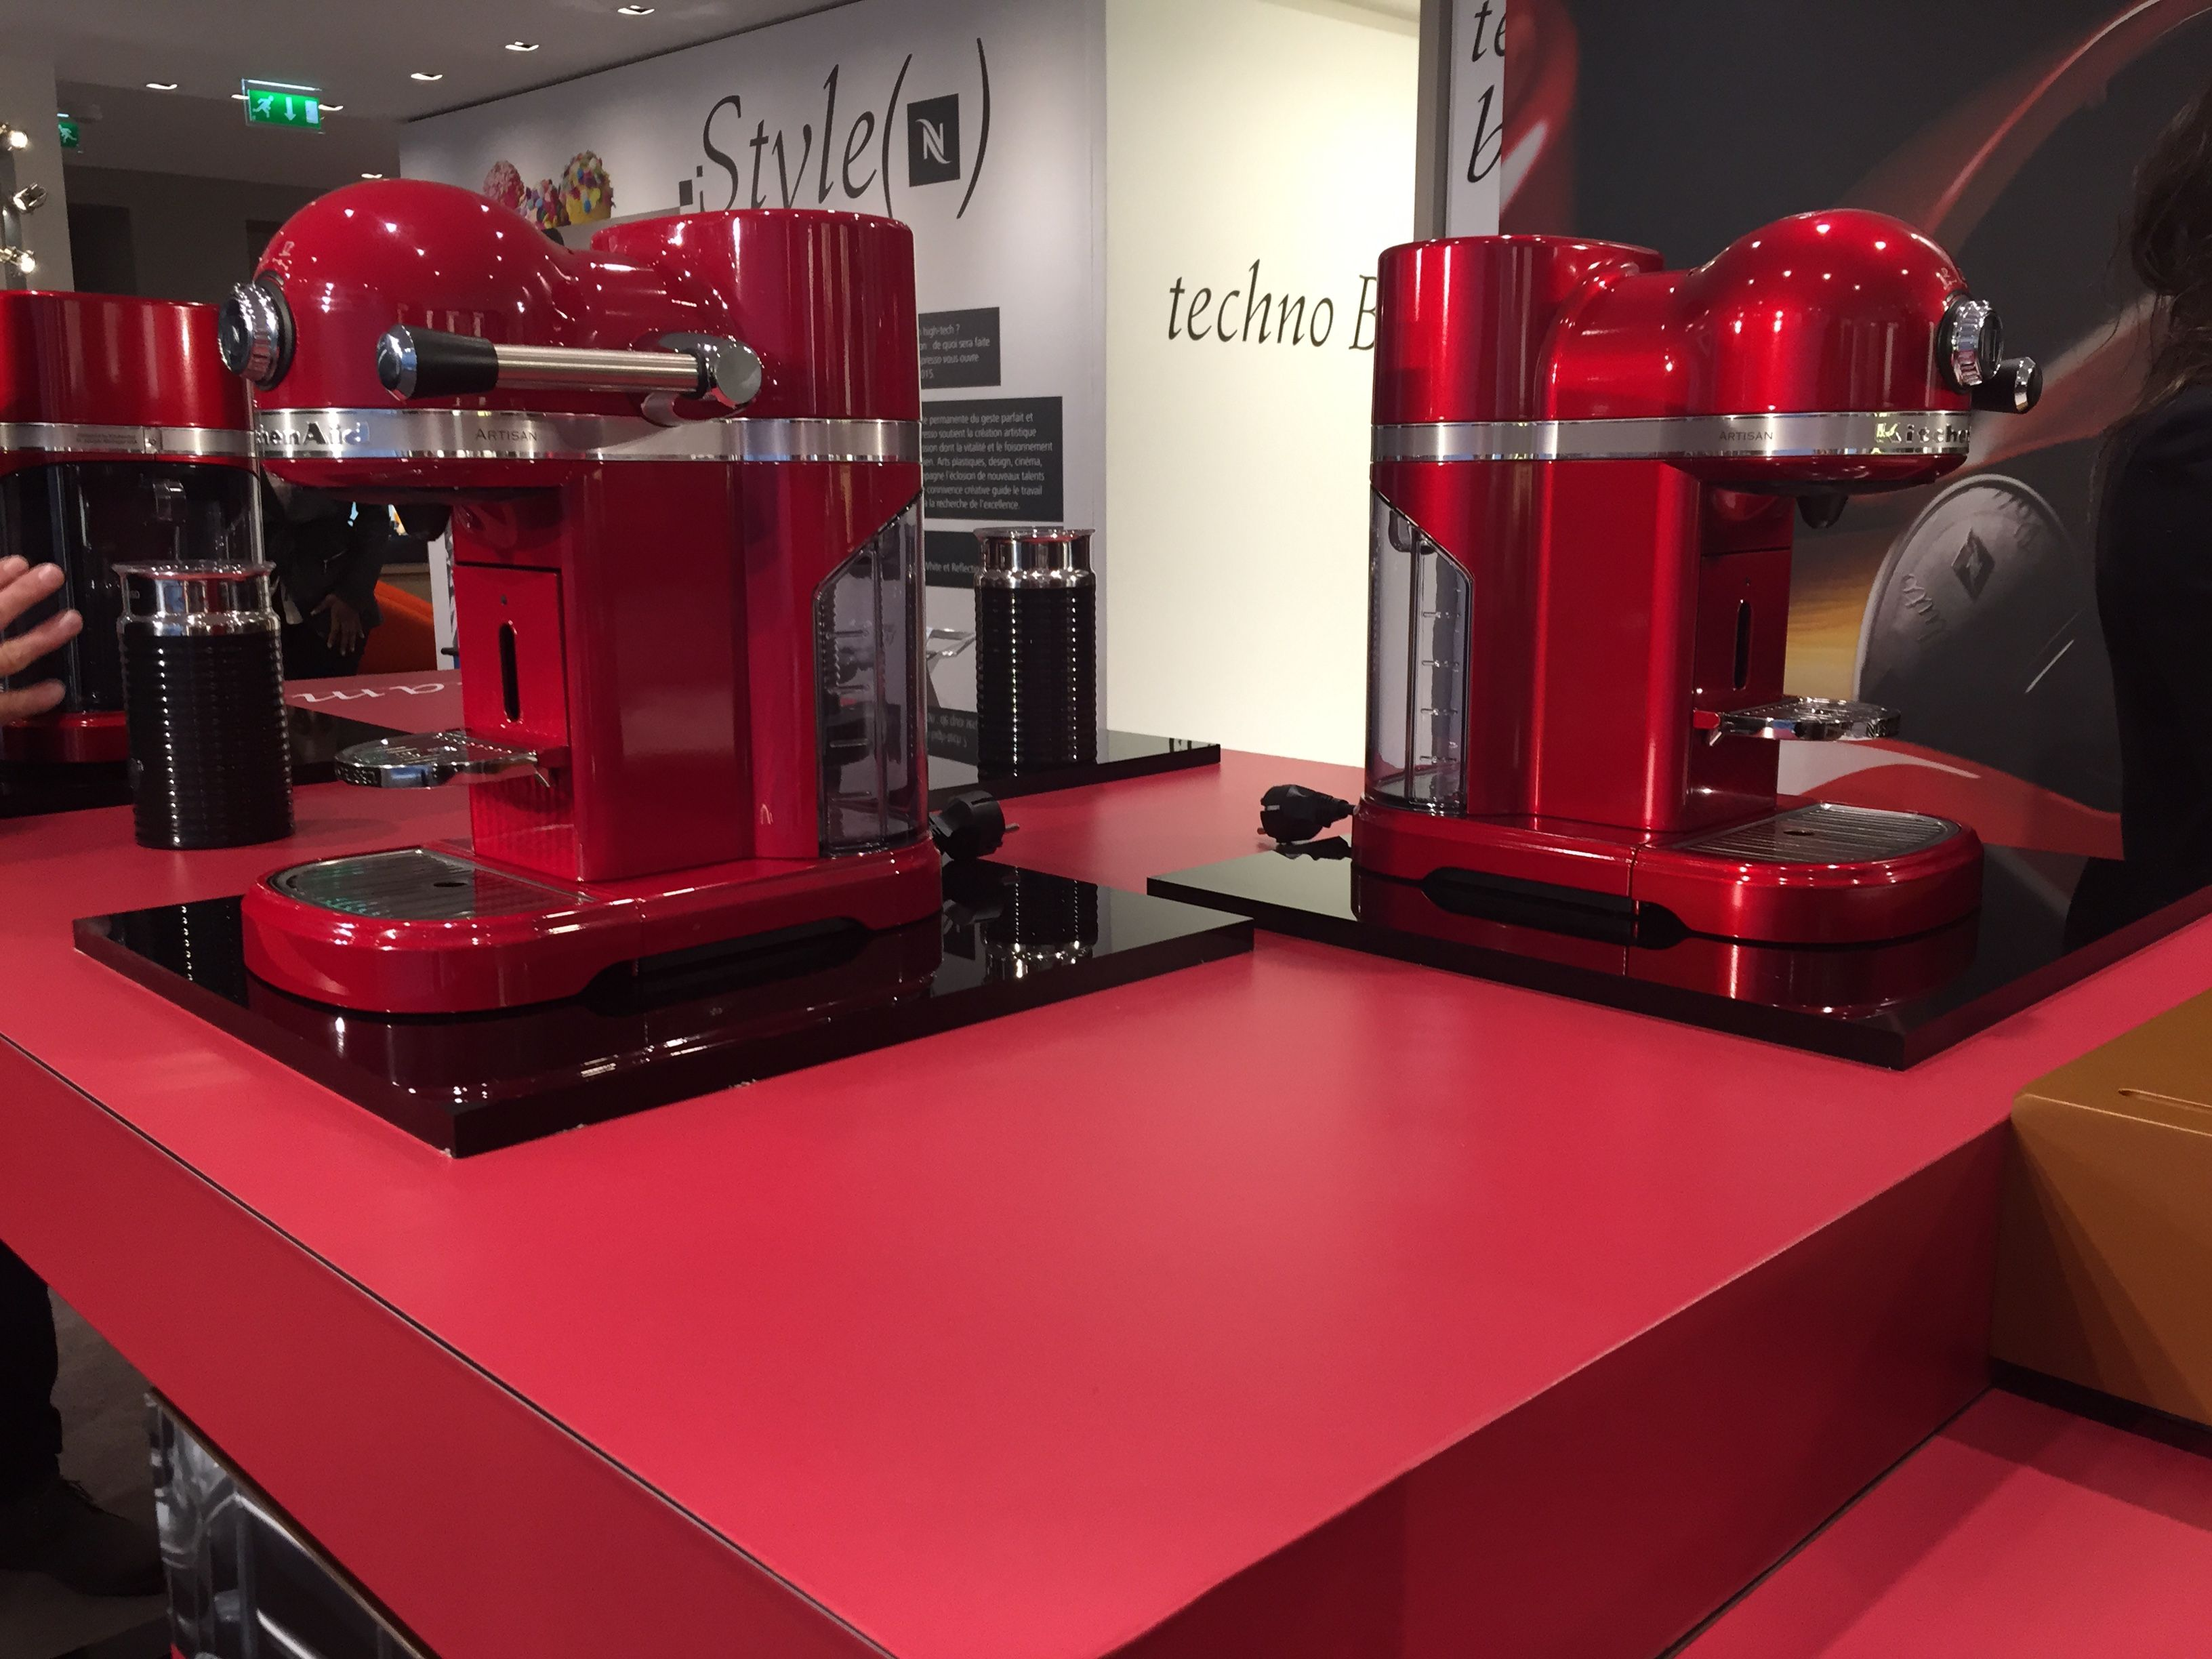 la nespresso de kitchenaid en rouge empire et pomme d 39 amour la nespresso de kitchenaid. Black Bedroom Furniture Sets. Home Design Ideas